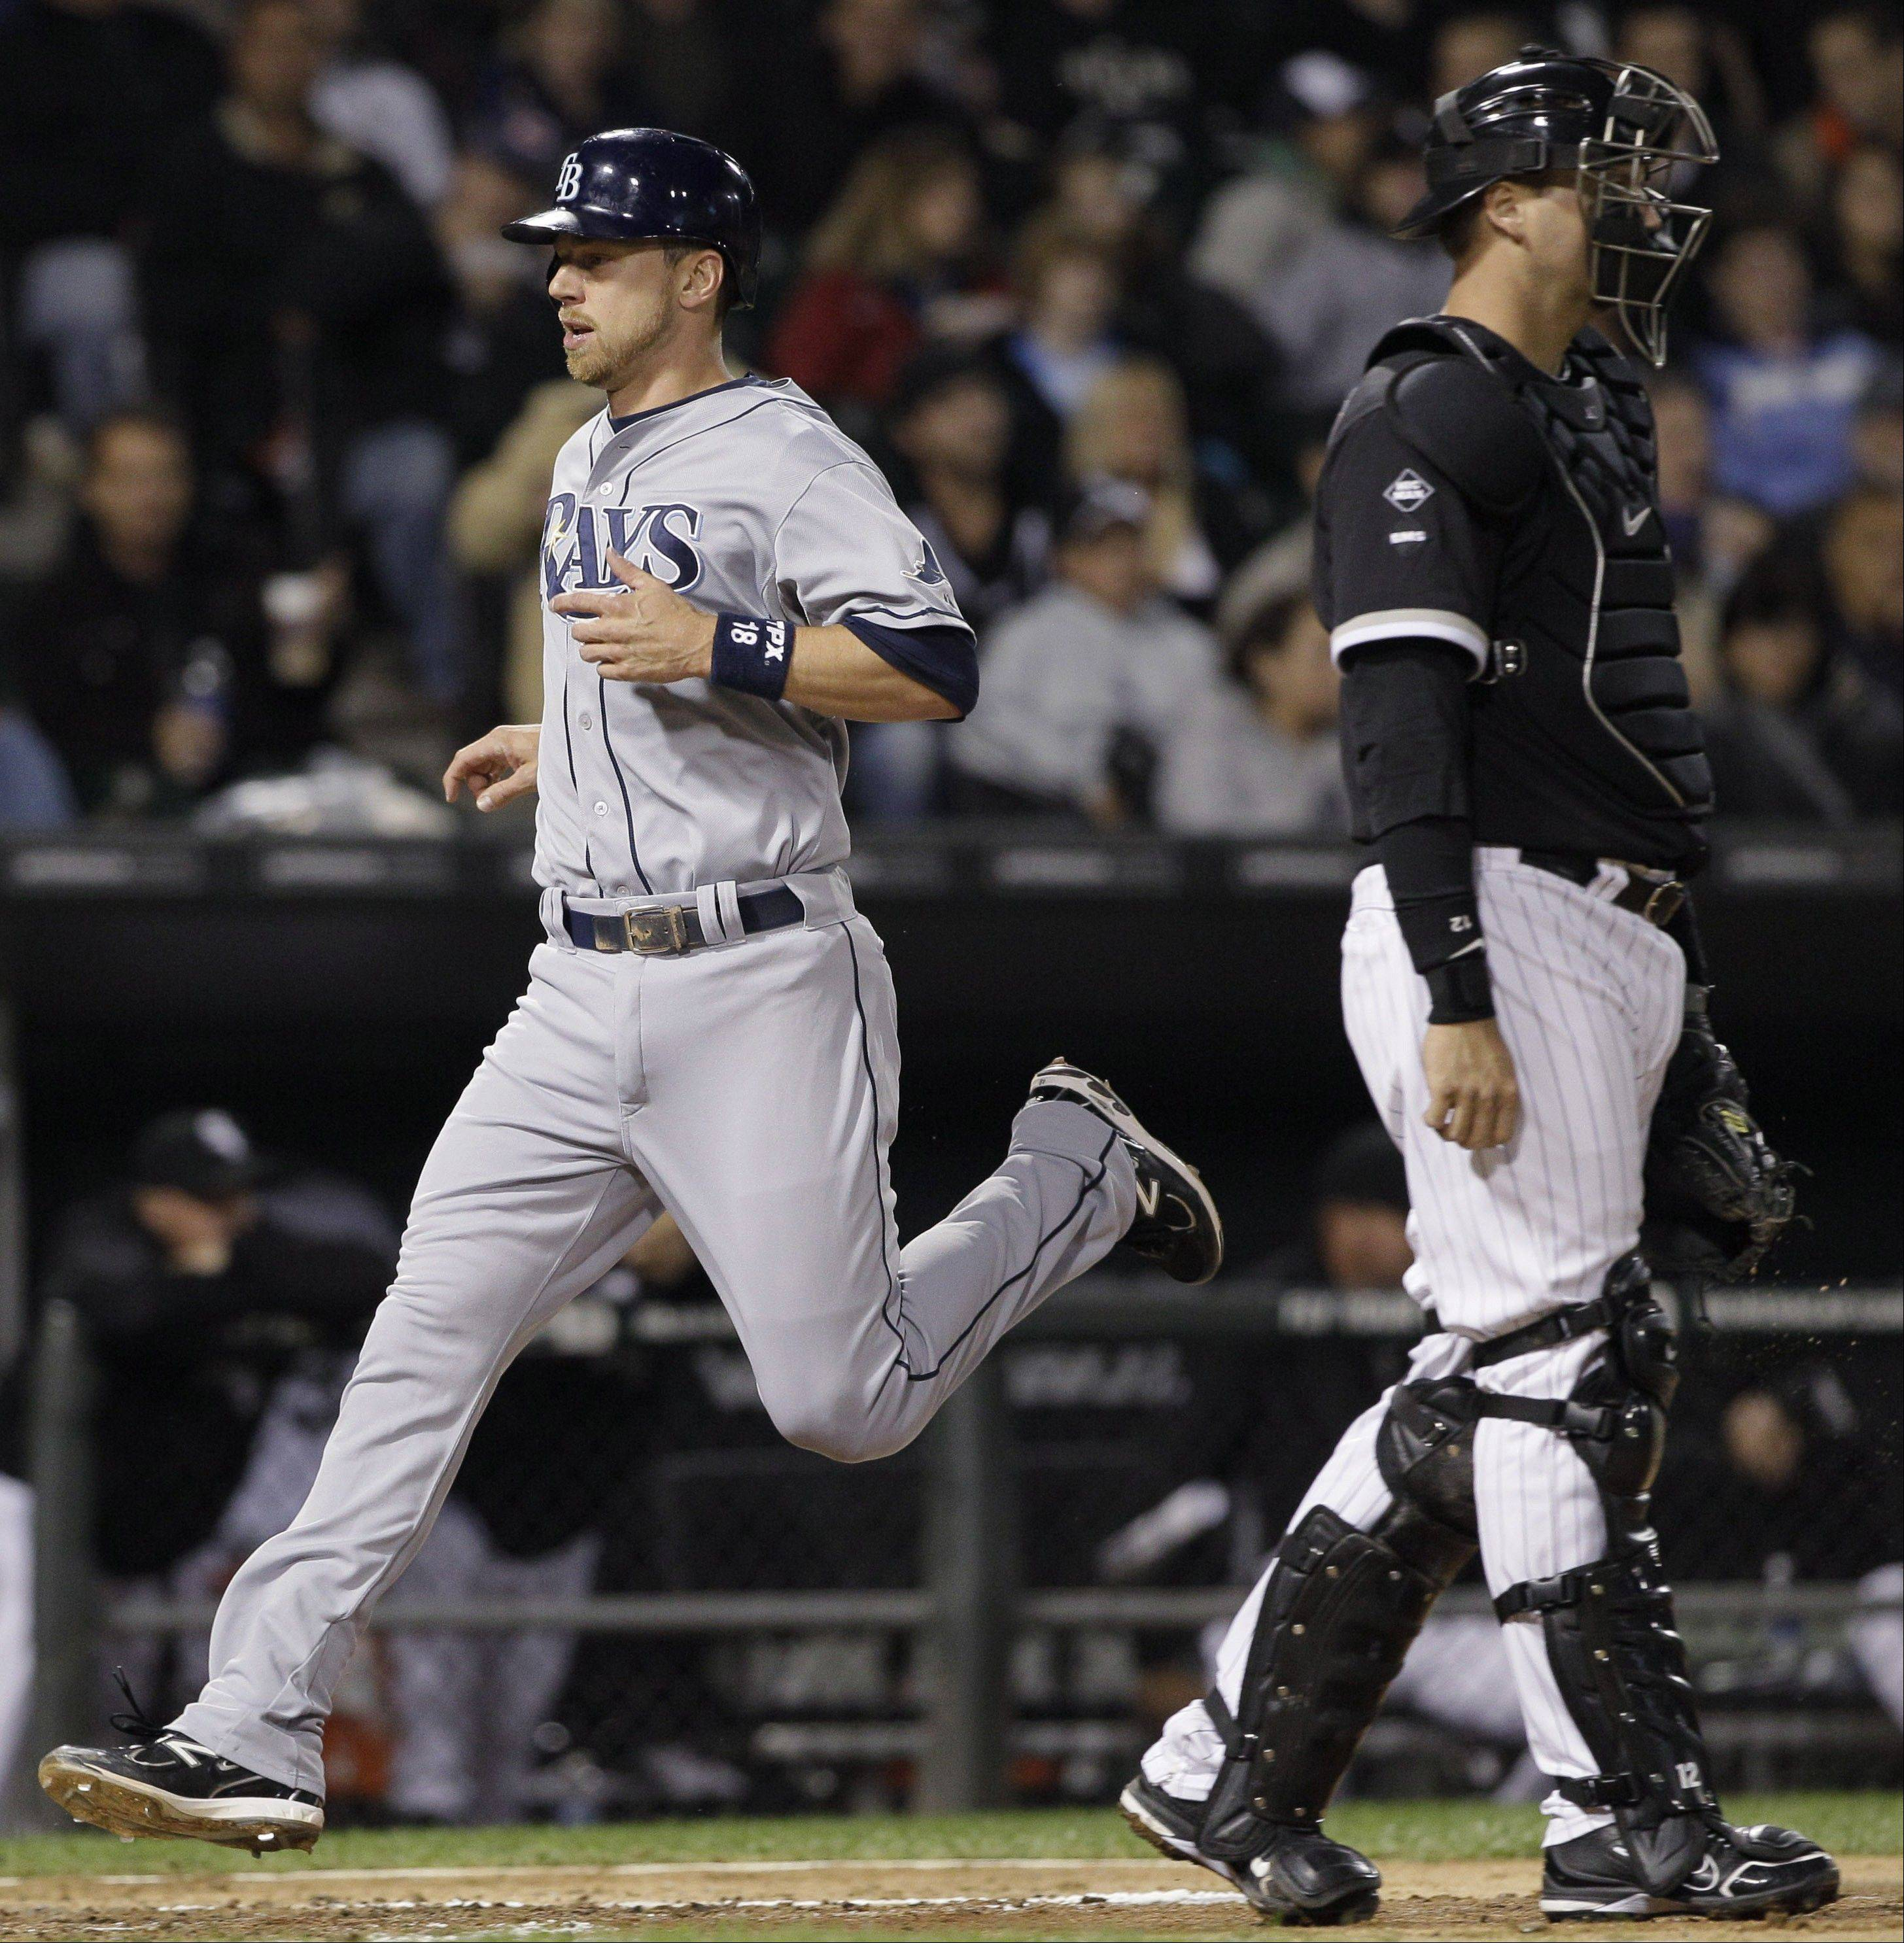 Tampa Bay Rays' Ben Zobrist, left, scores on a sacrifice fly hit by Carlos Pena as White Sox catcher A.J. Pierzynski looks to the field during the fourth inning Thursday night at U.S. Cellular Field.